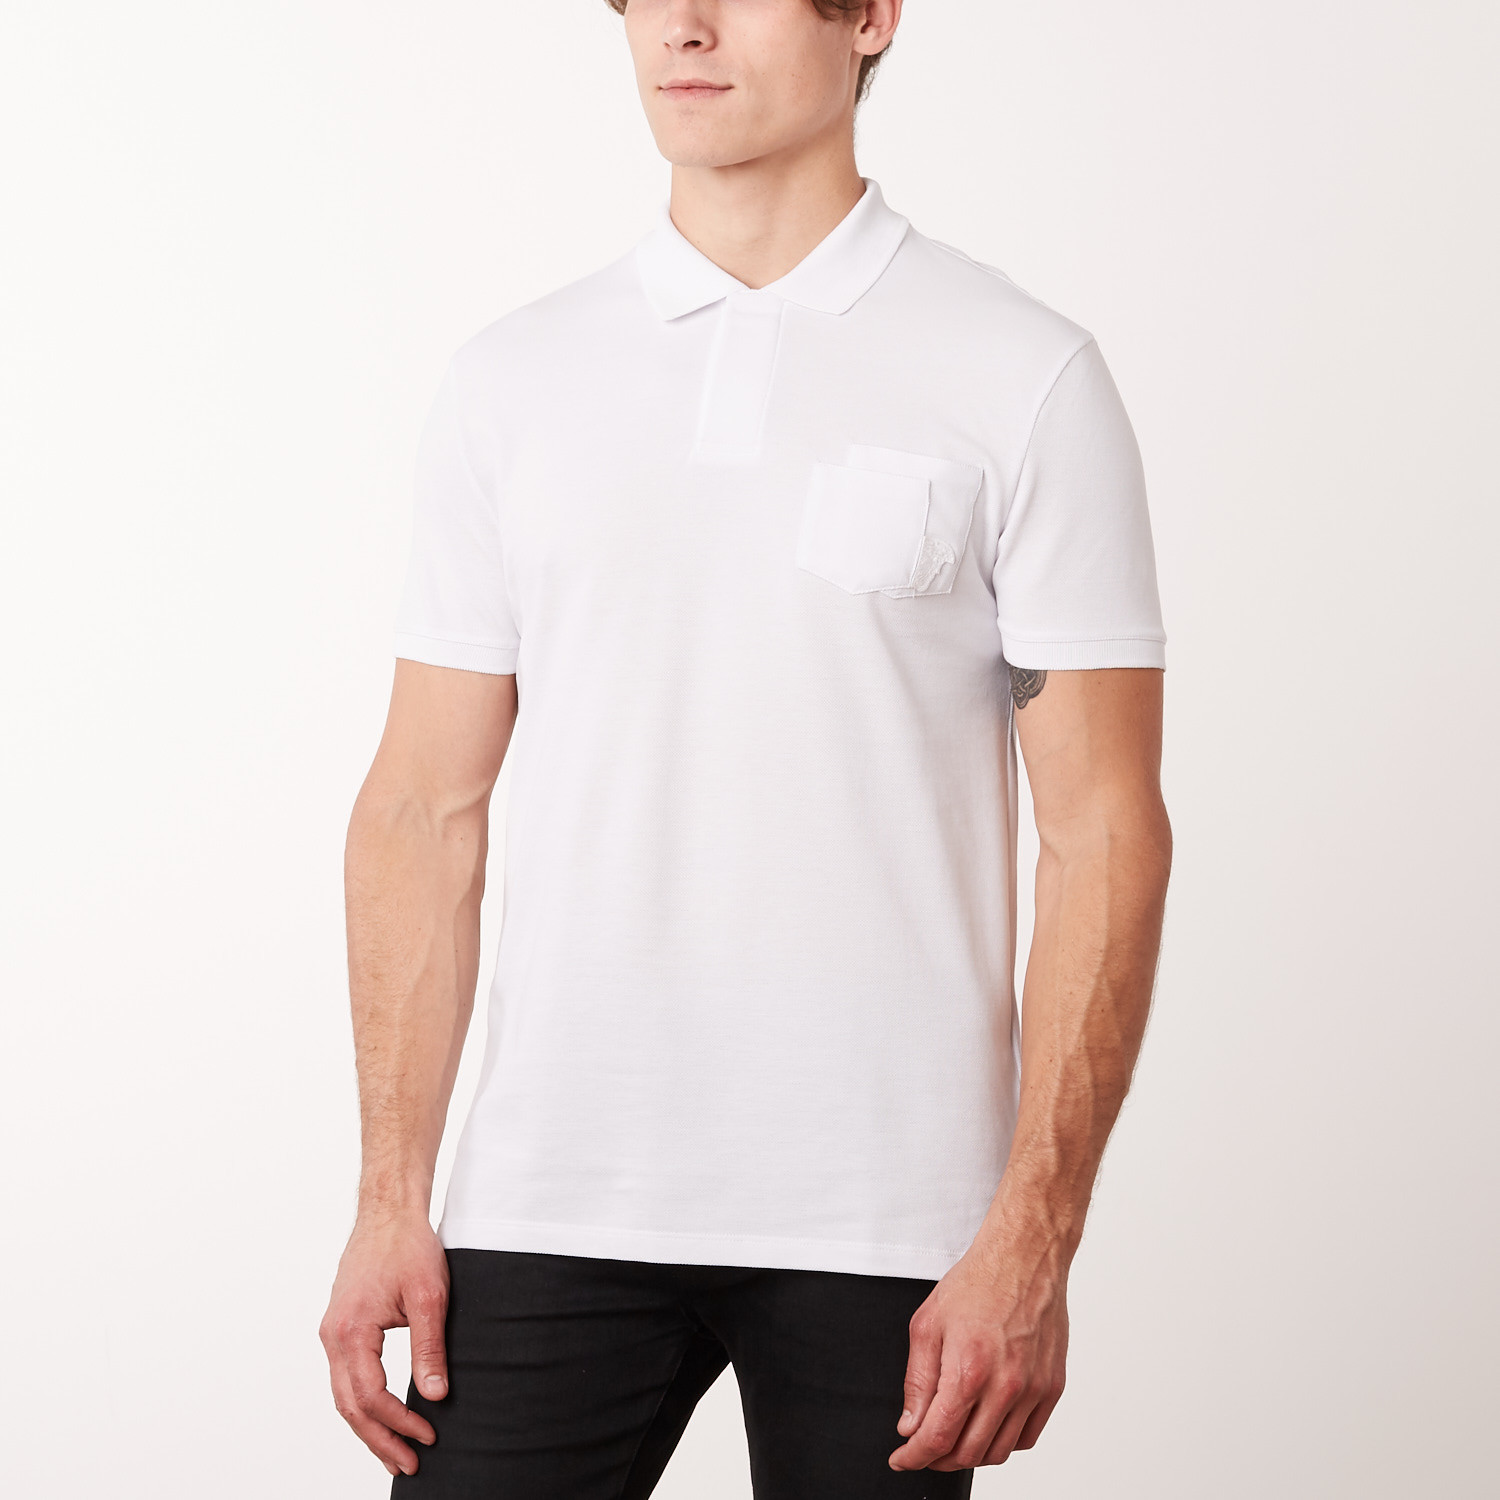 5b12aa5245d7 Pocket Polo Shirt // White (S) - Designer Fashion - Touch of Modern